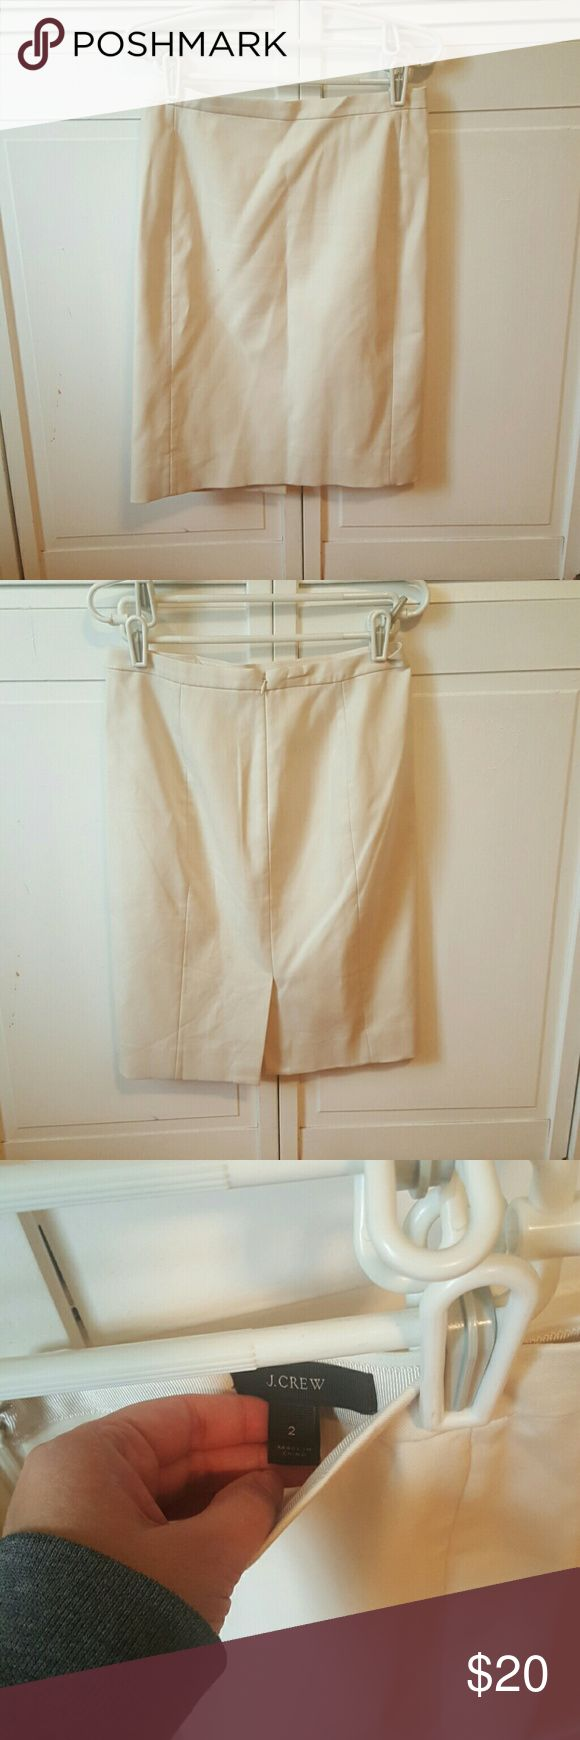 J. Crew pencil skirt This light creamy beige pencil skirt is in good condition.   Approximate measurements:  Waist: 14 inches Length: 23 inches   *SAVE MORE AND BUY BUNDLE OF 3 PENCIL SKIRTS IN MY BUNDLE POST* J. Crew Skirts Pencil